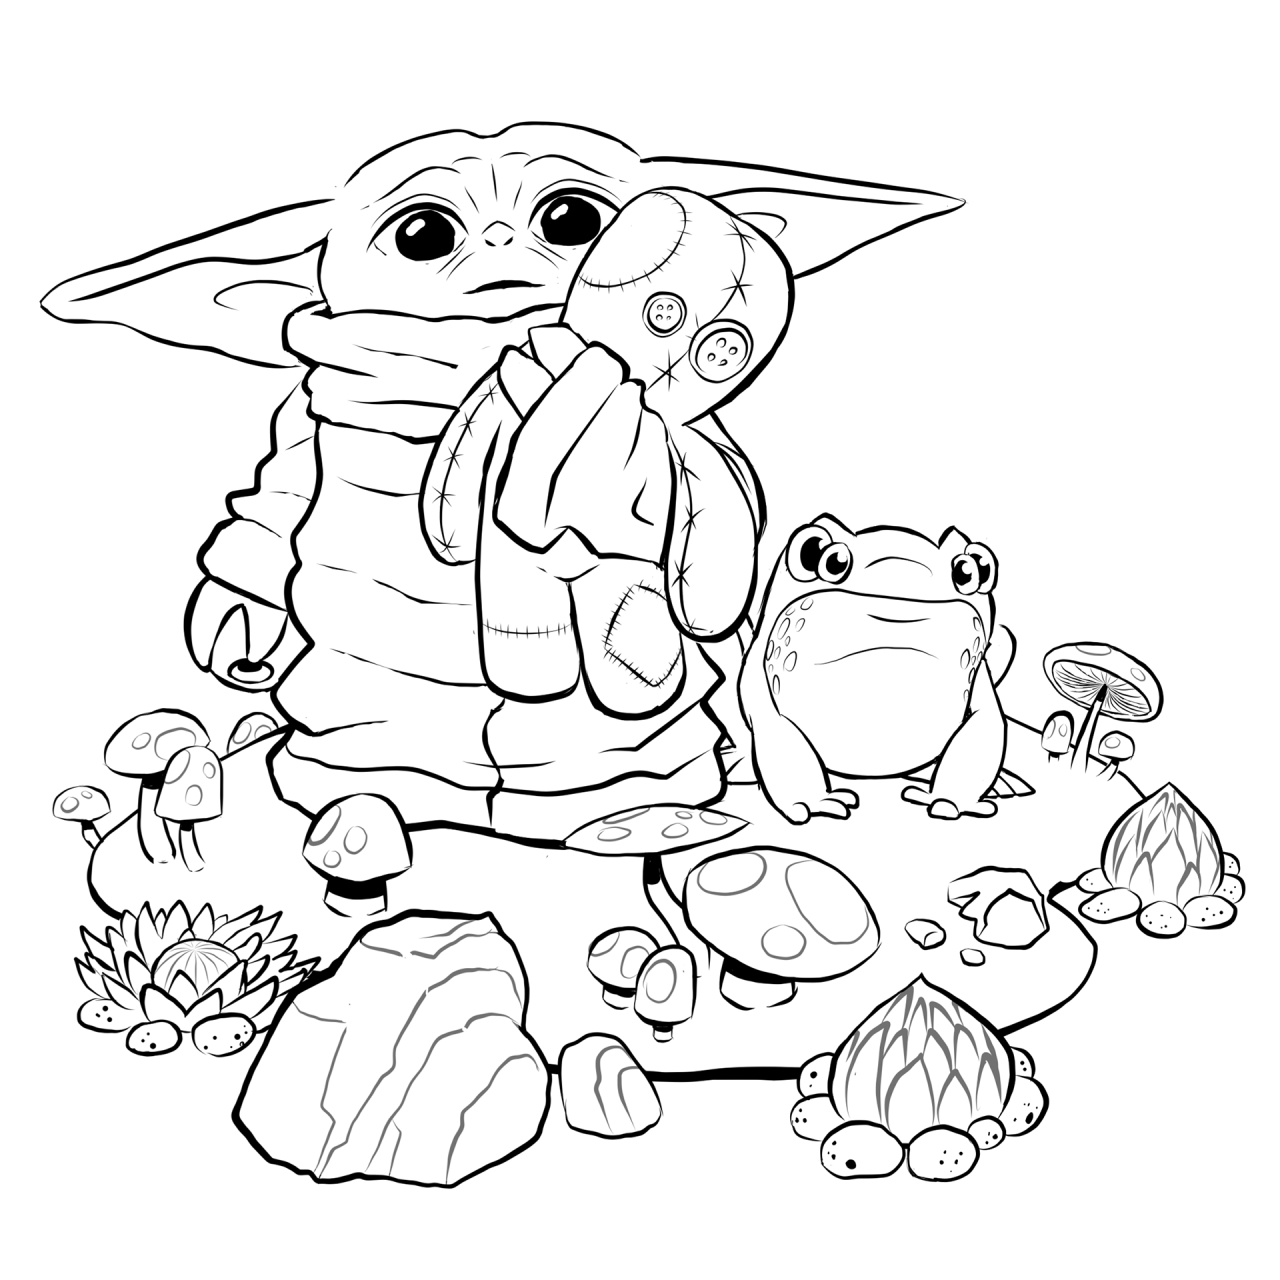 TieFighters — Baby Yoda Coloring Page Art by Tony Helms  IG